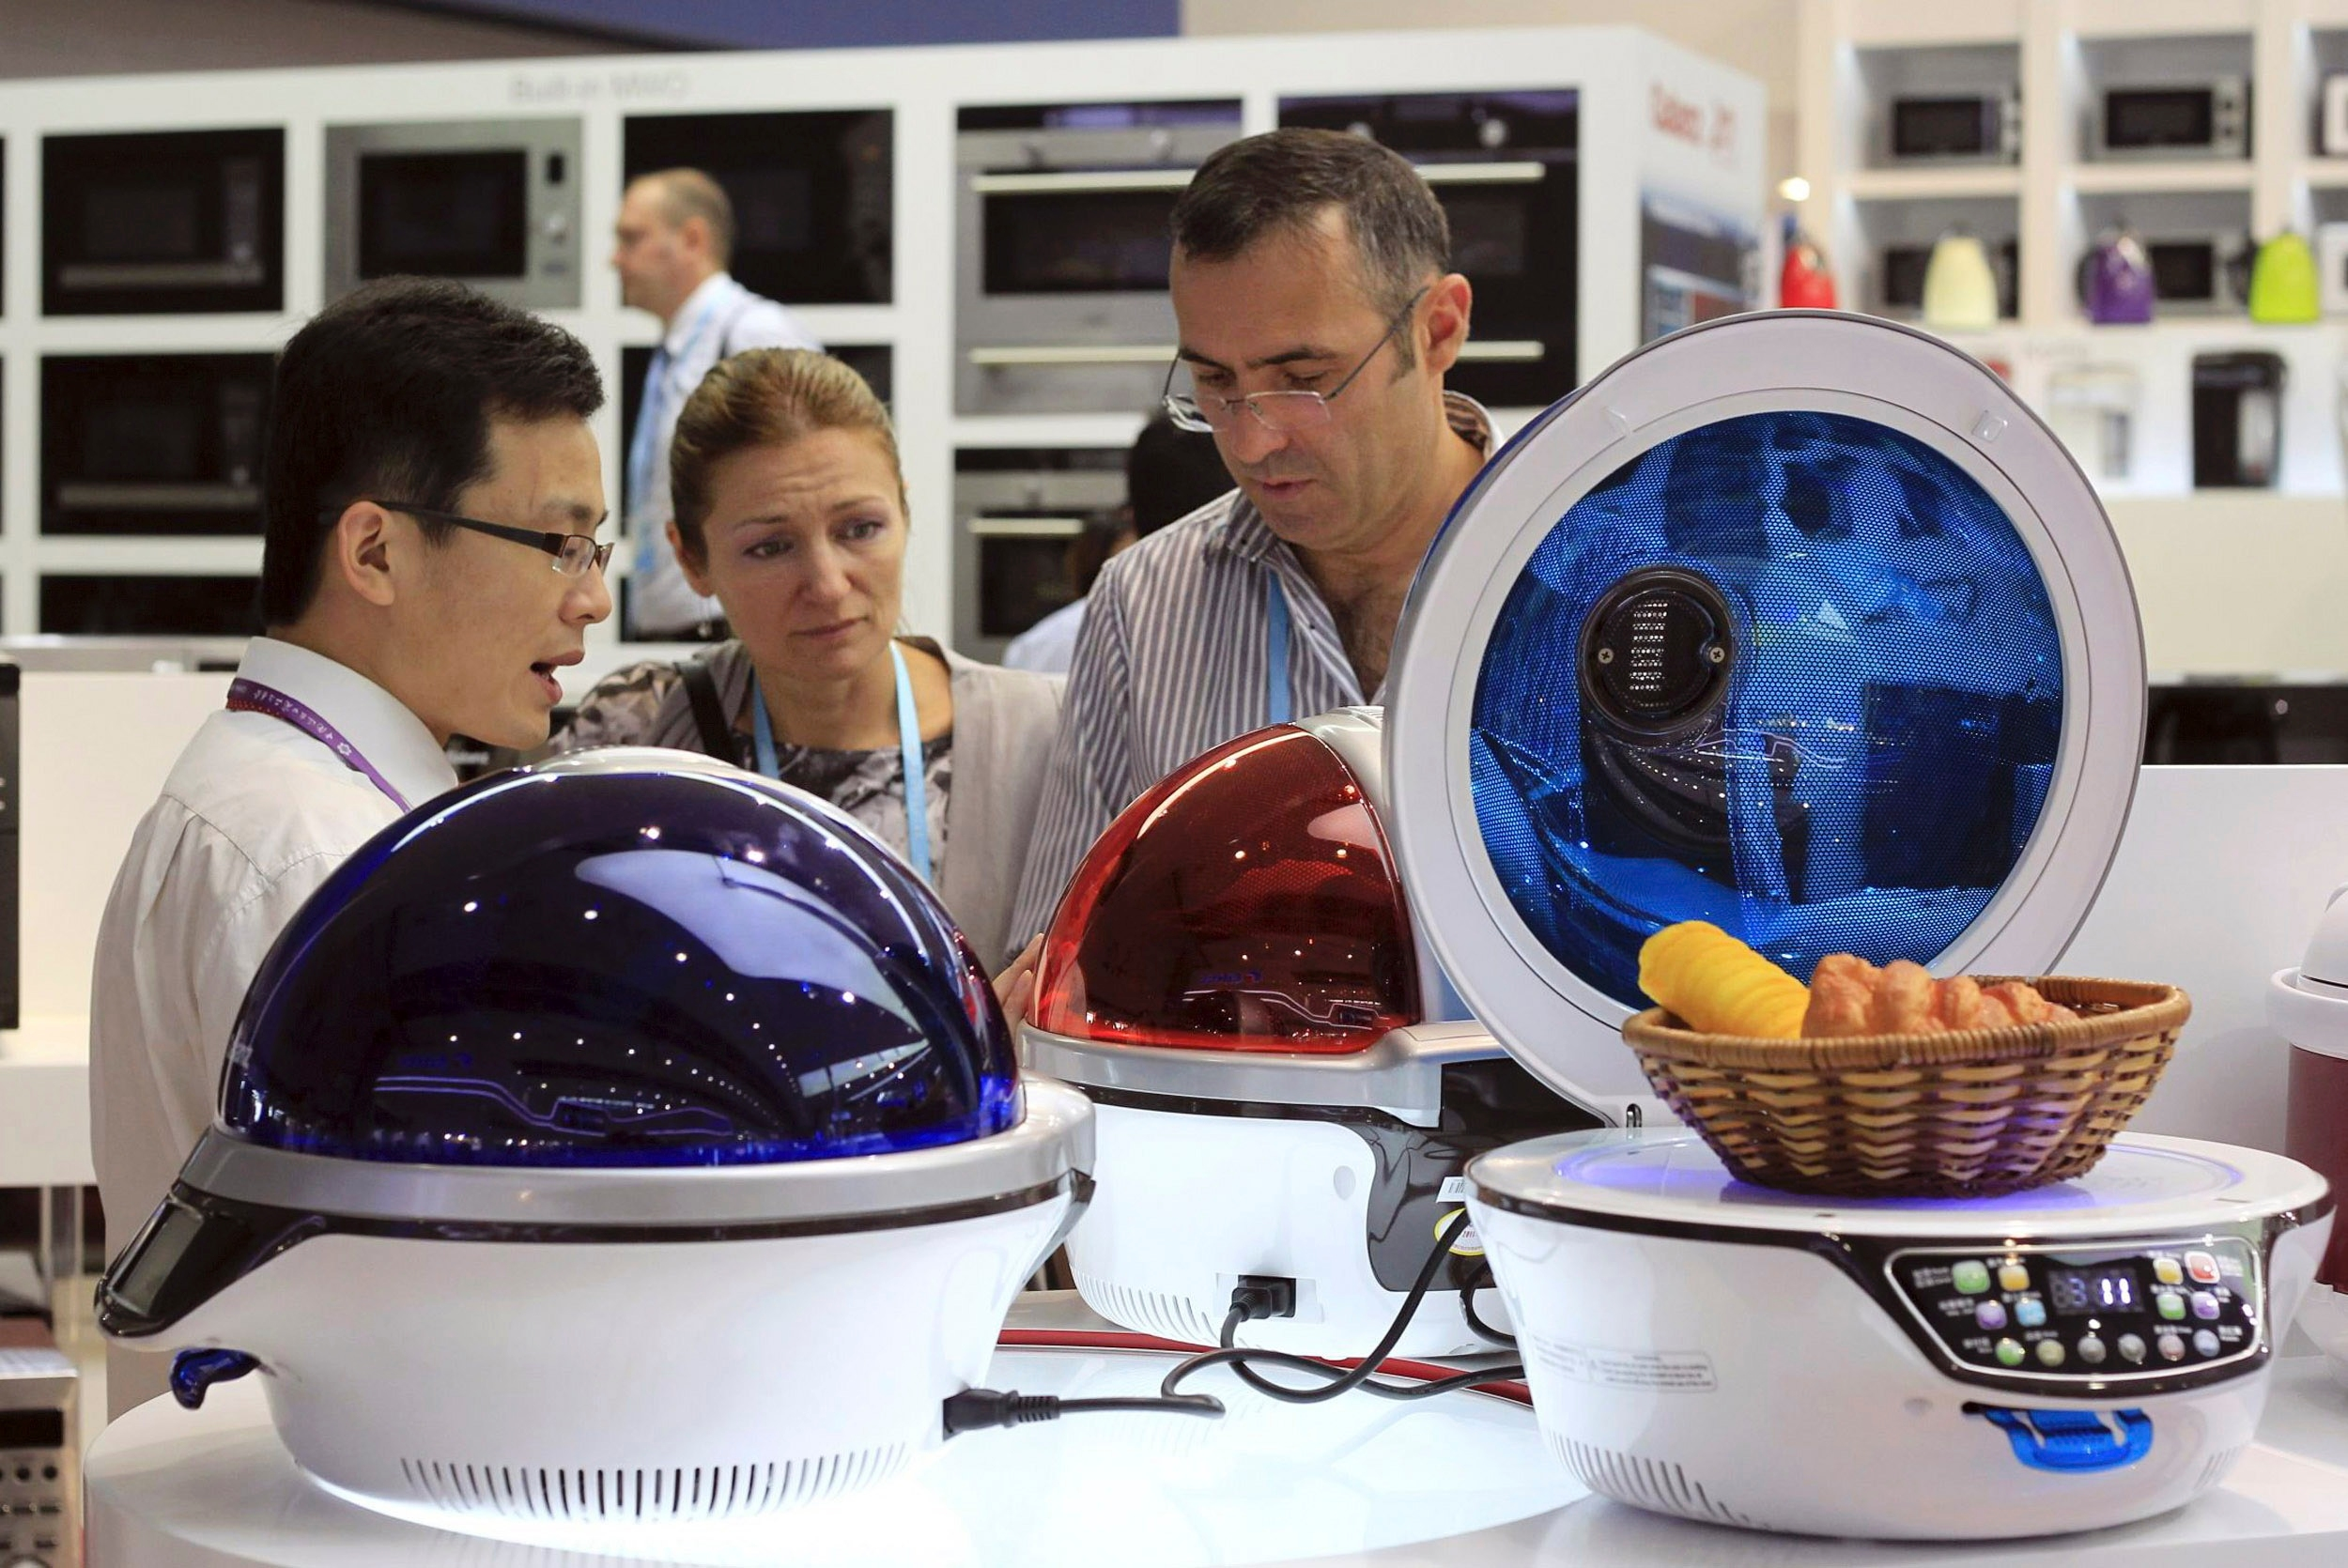 Buyers look at kitchen appliances in China.